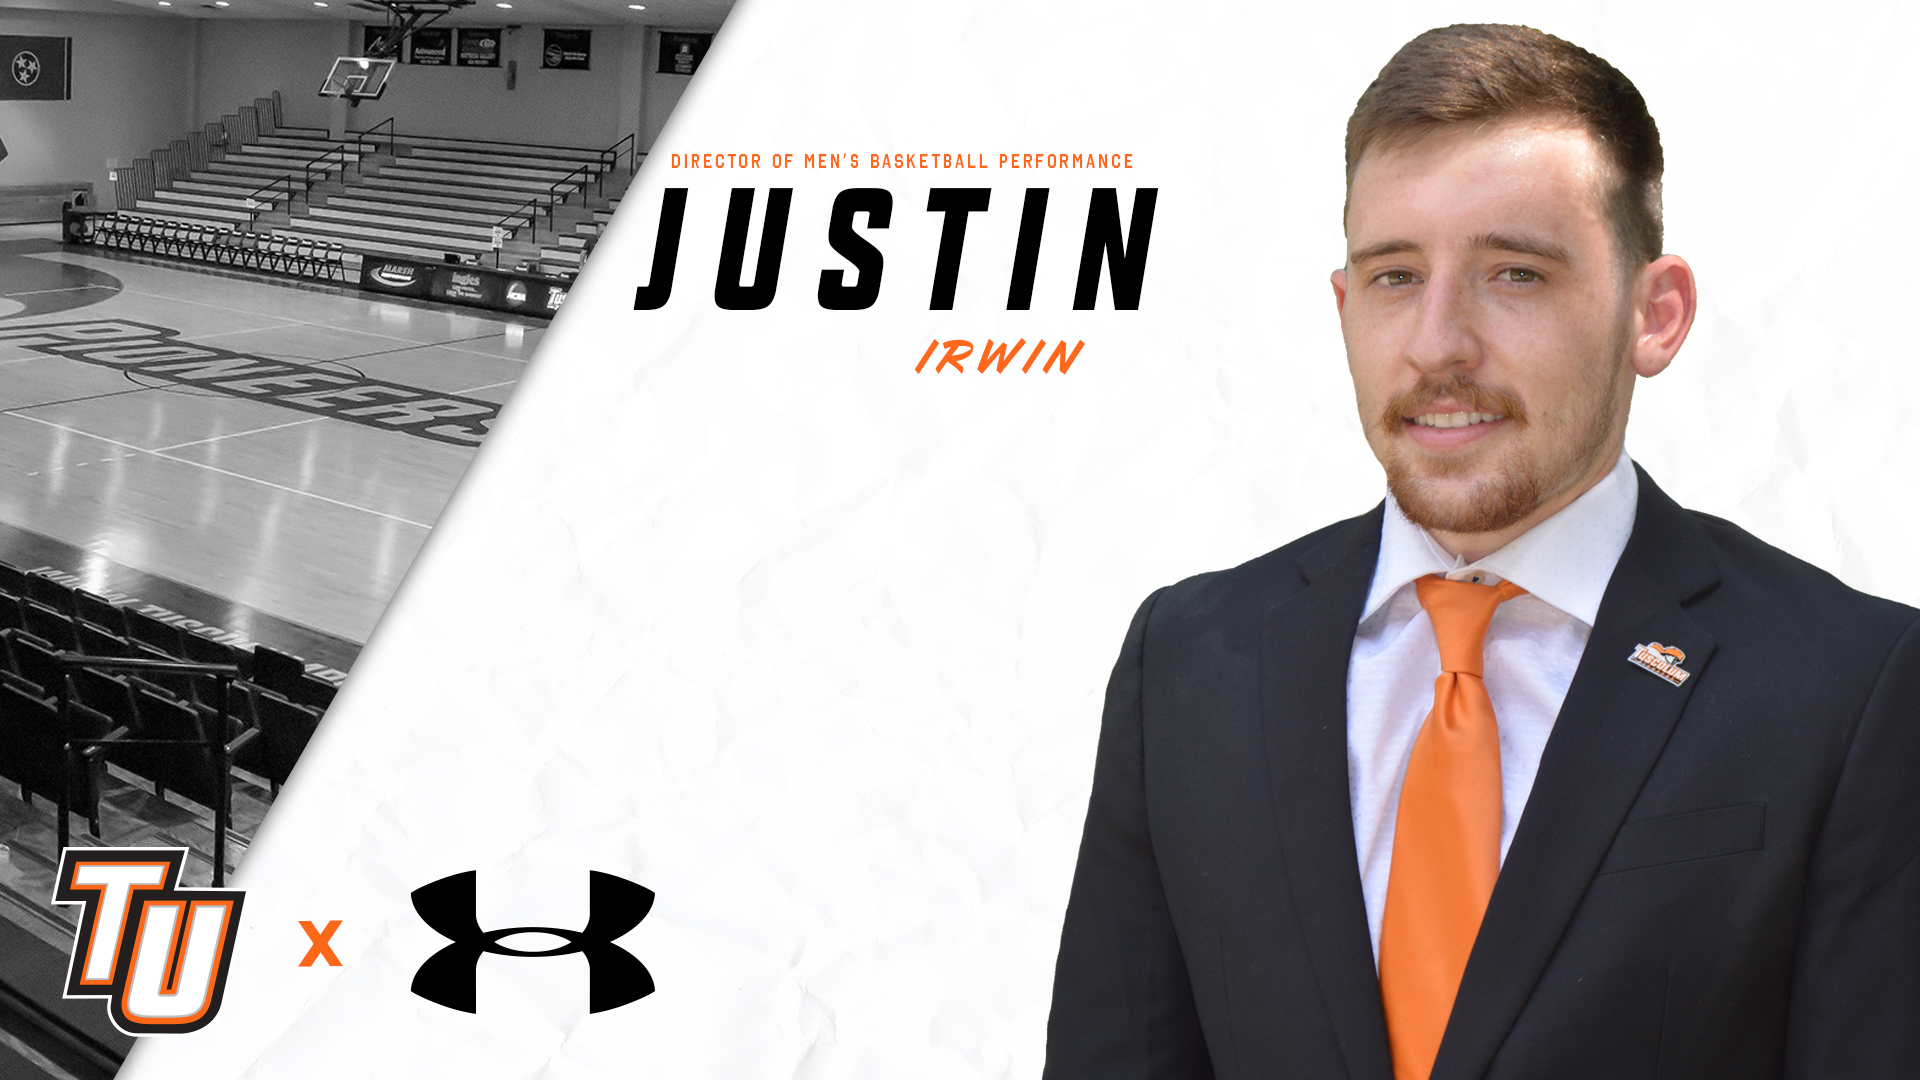 Justin Irwin named to Tusculum men's basketball staff